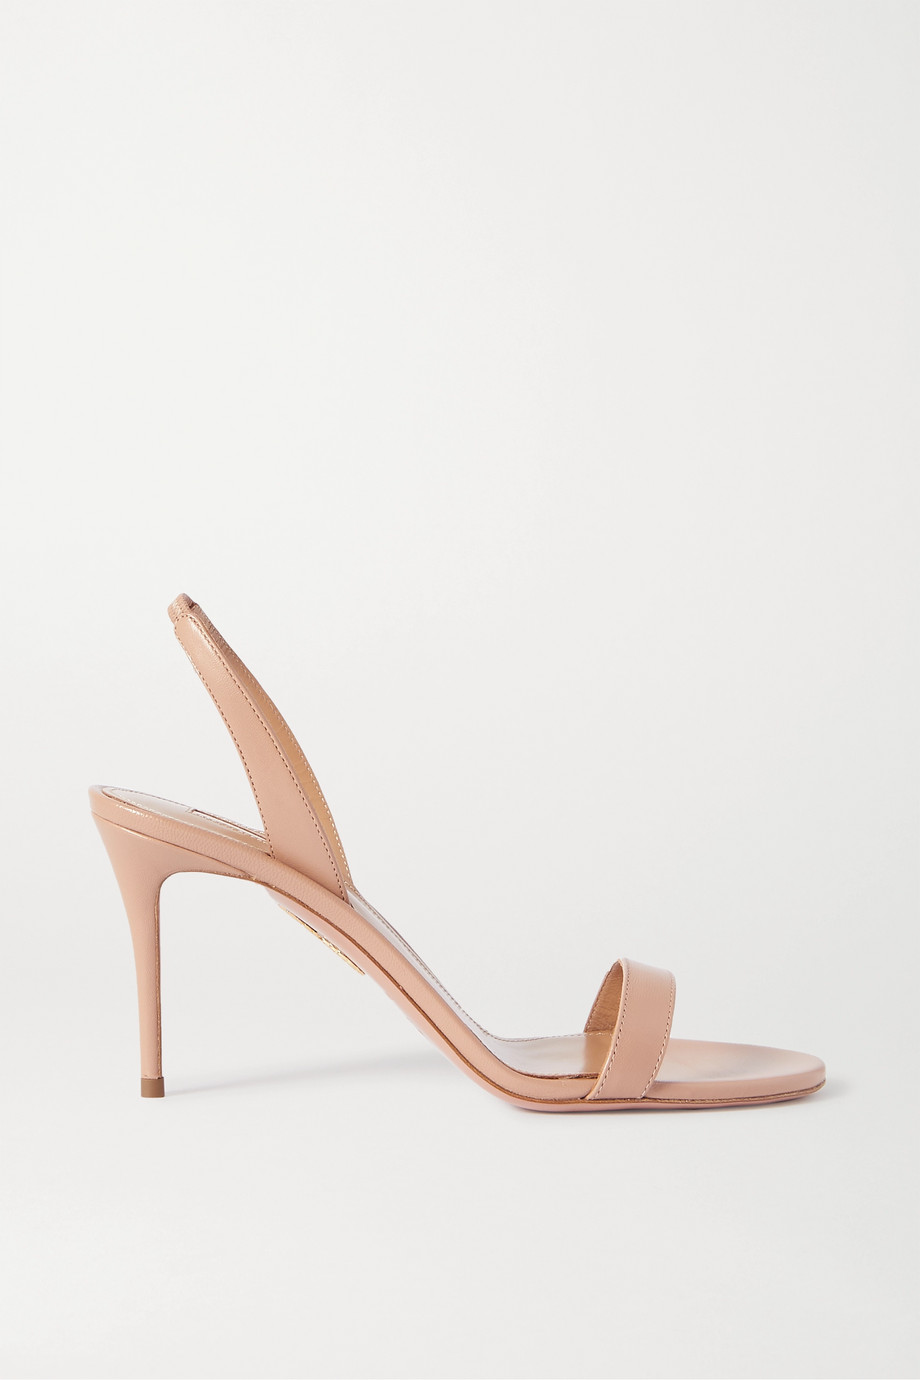 Aquazzura So Nude 85 leather slingback sandals